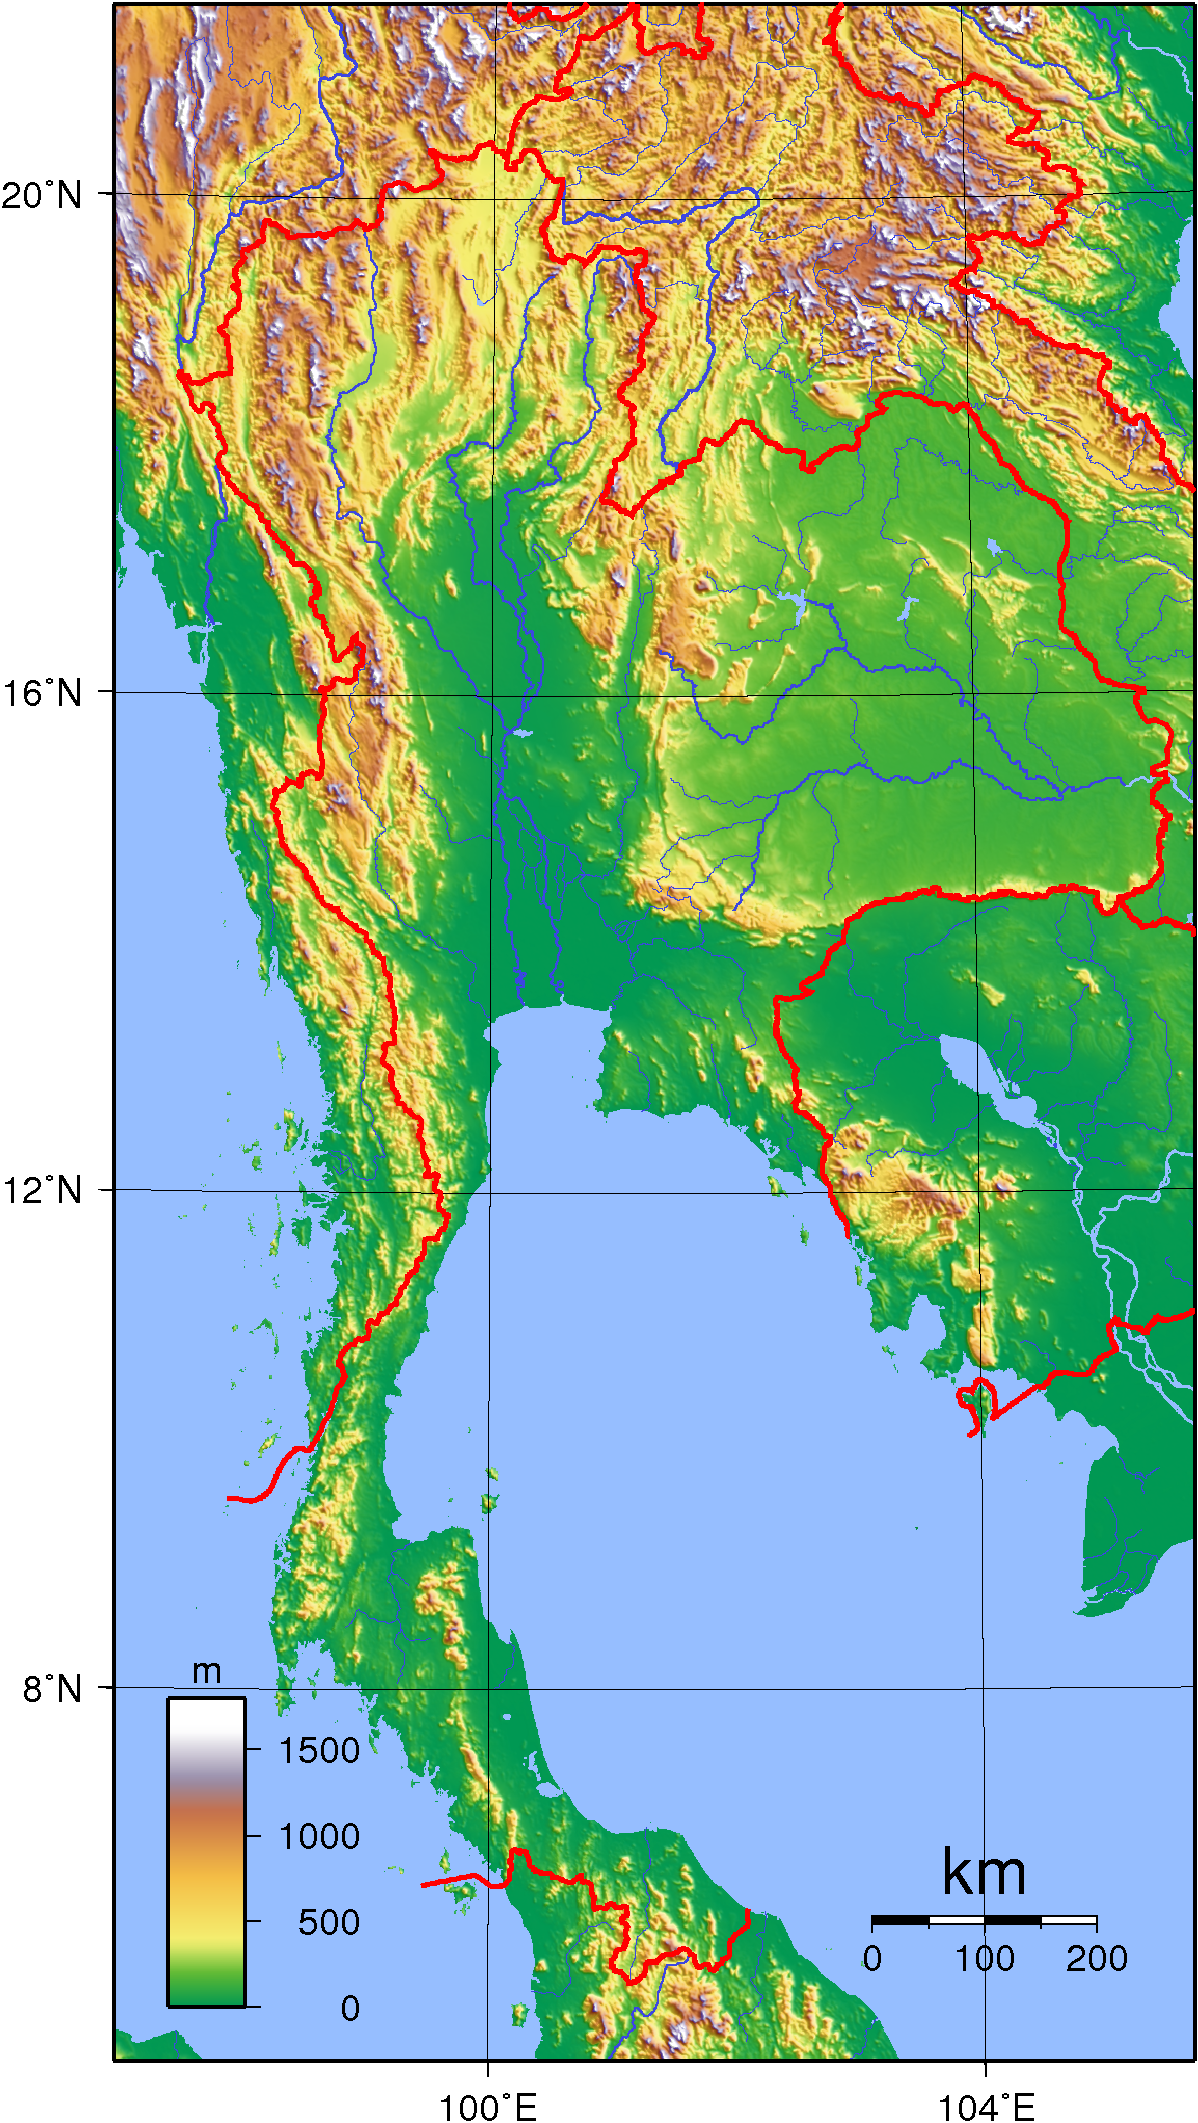 Thailand Topographic Map.Topographic Map Of Thailand Maps Thailand Tourism Thailand Tourism